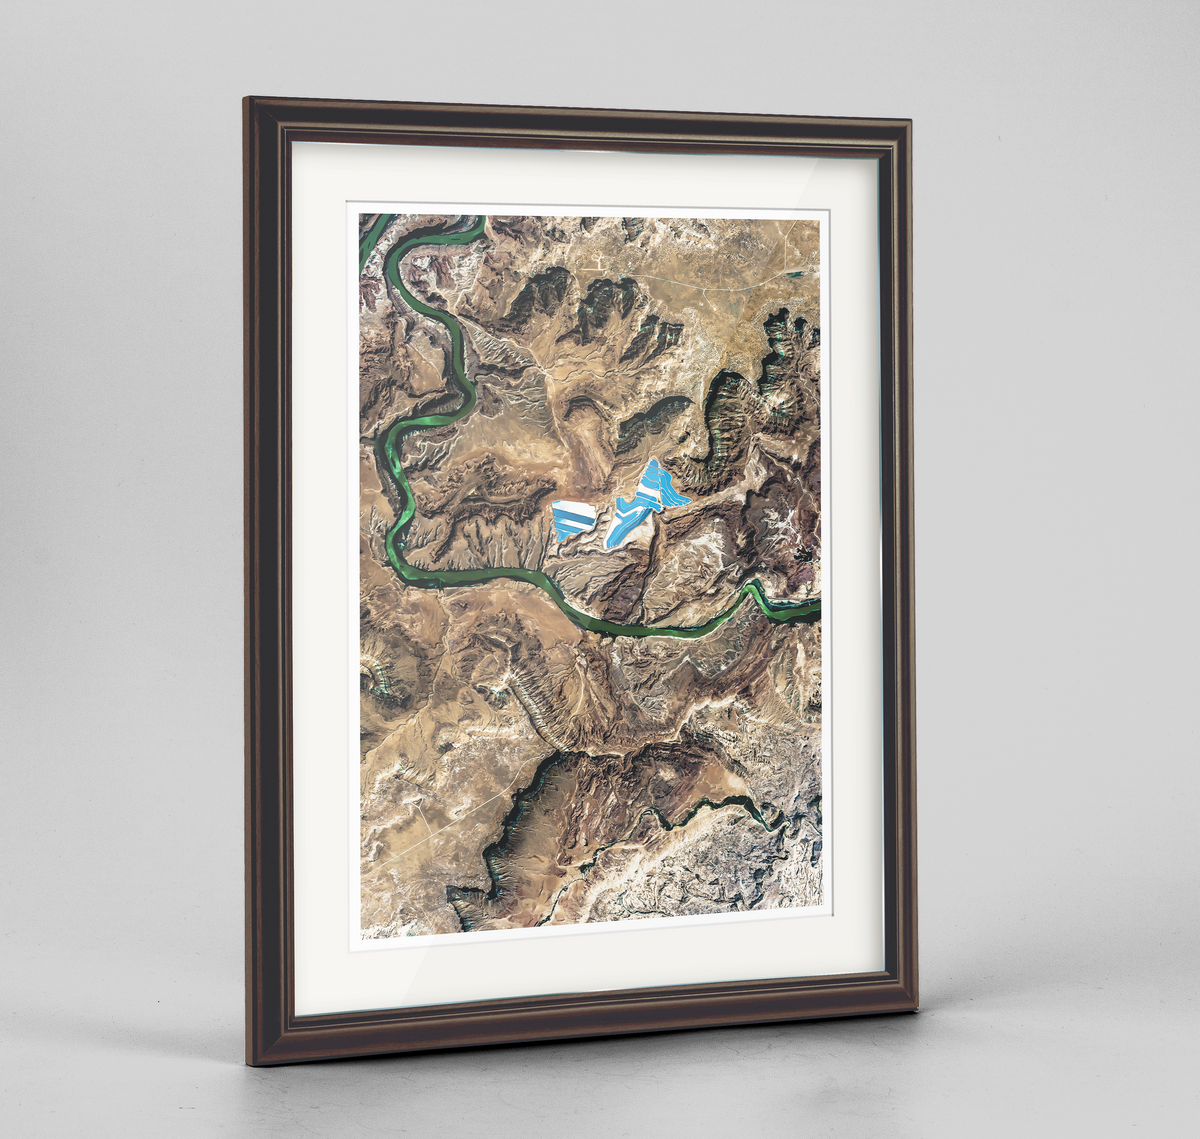 Moab Utah Earth Photography Art Print - Framed